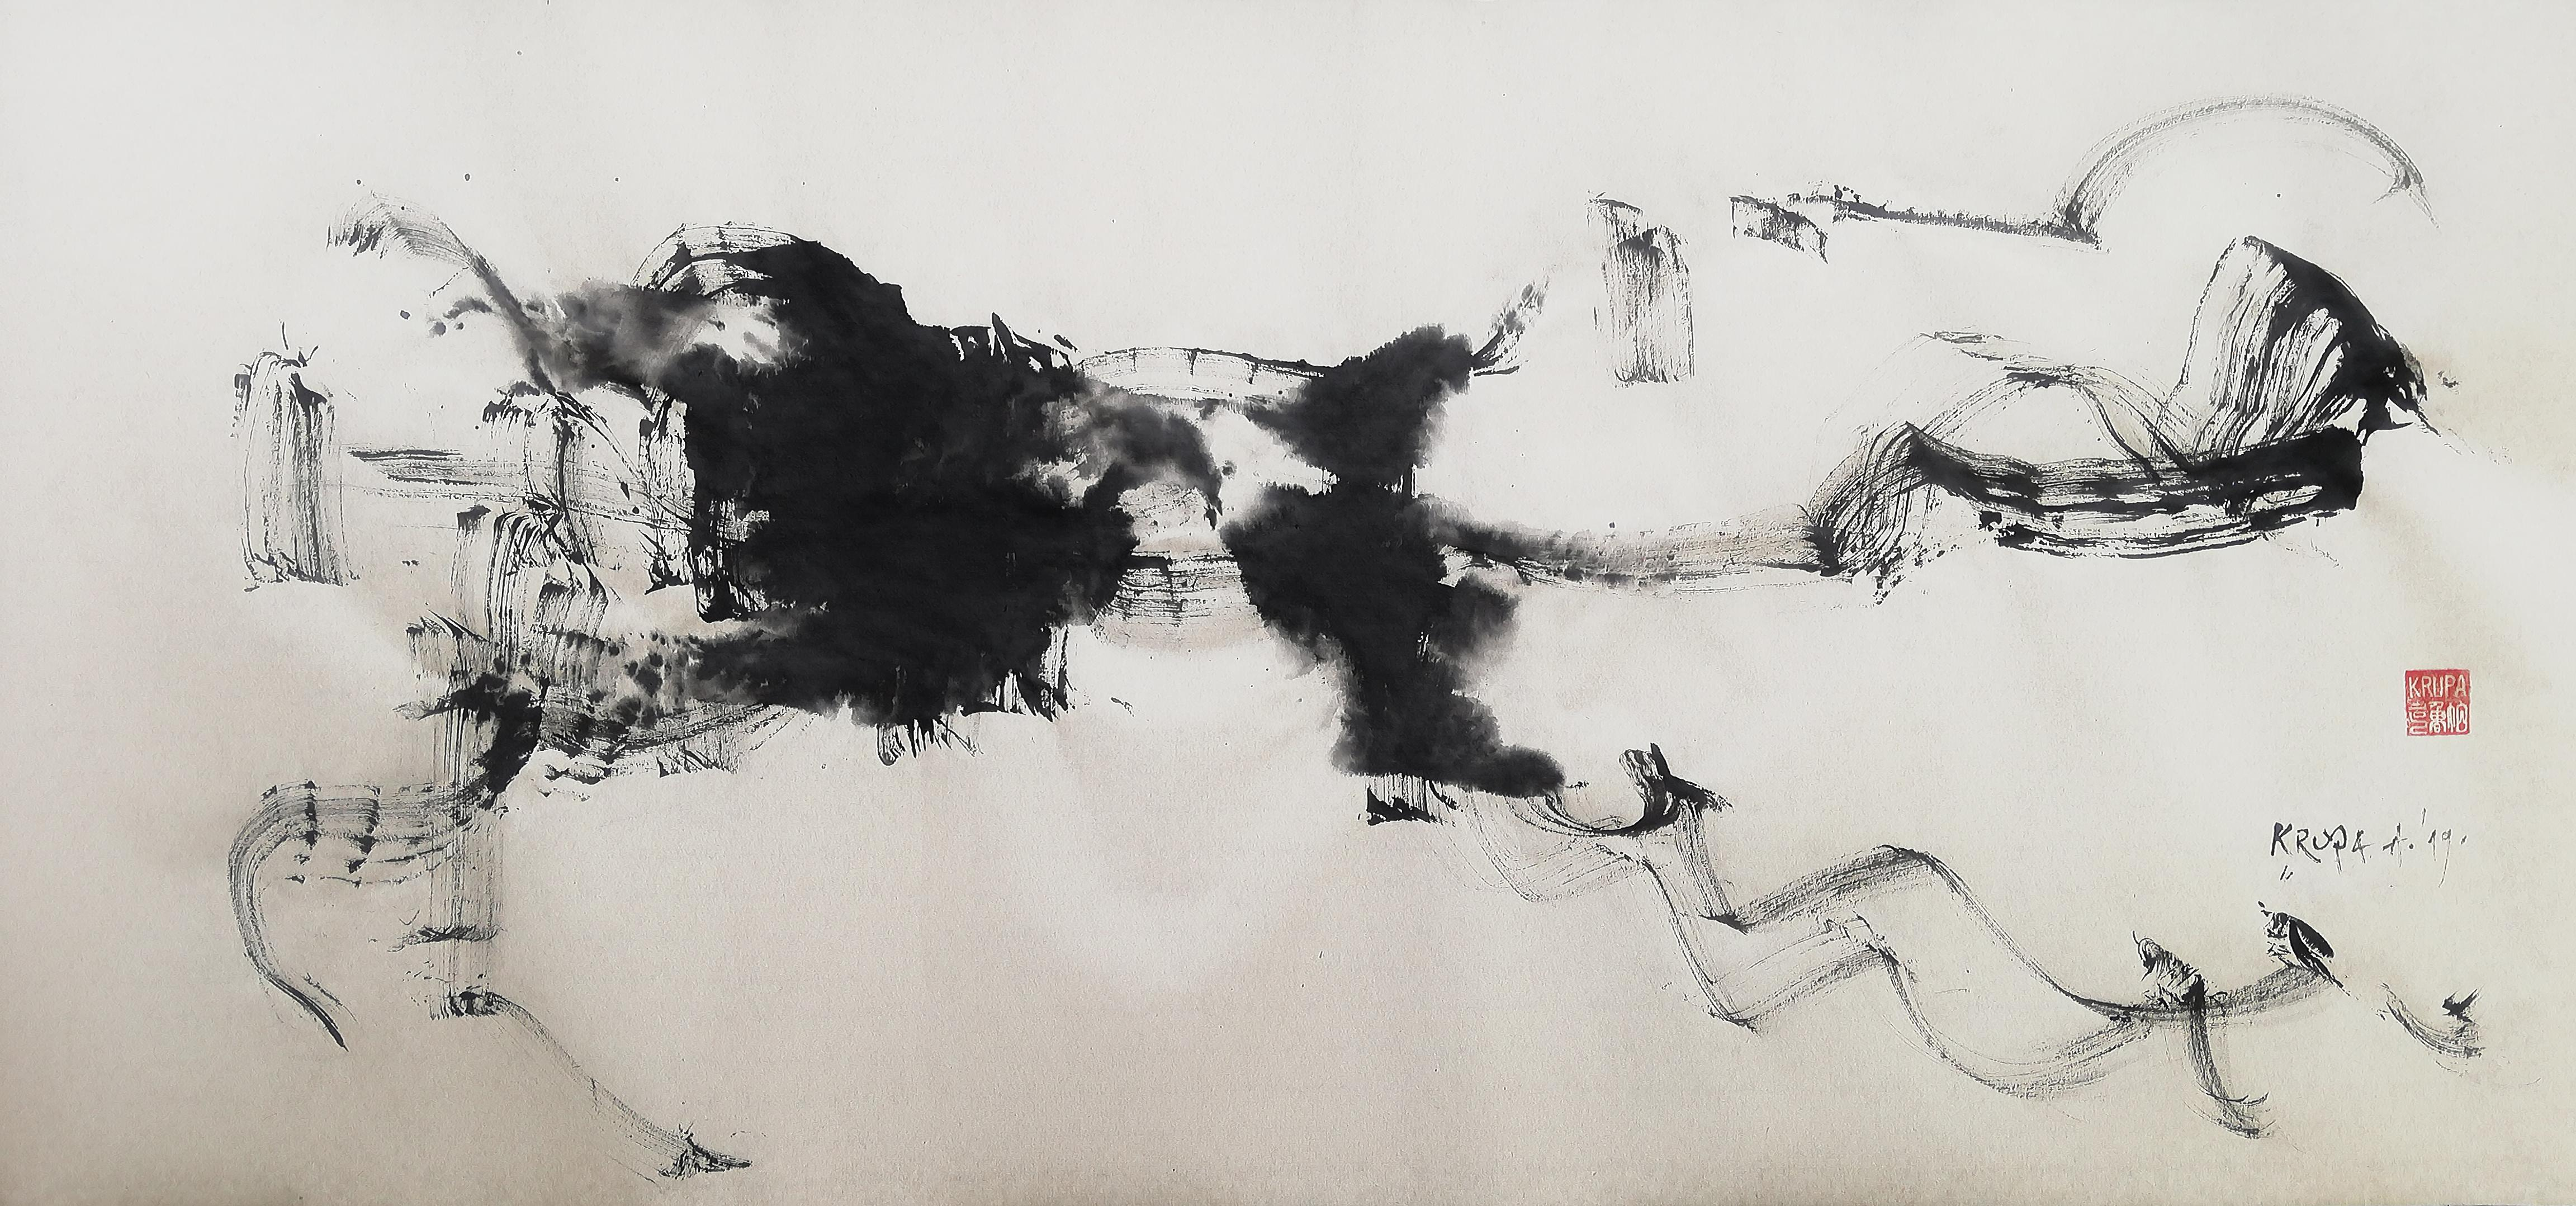 Kupa river in Ladešići, Contemporary Abstract Ink Painting Minimalist Landscape